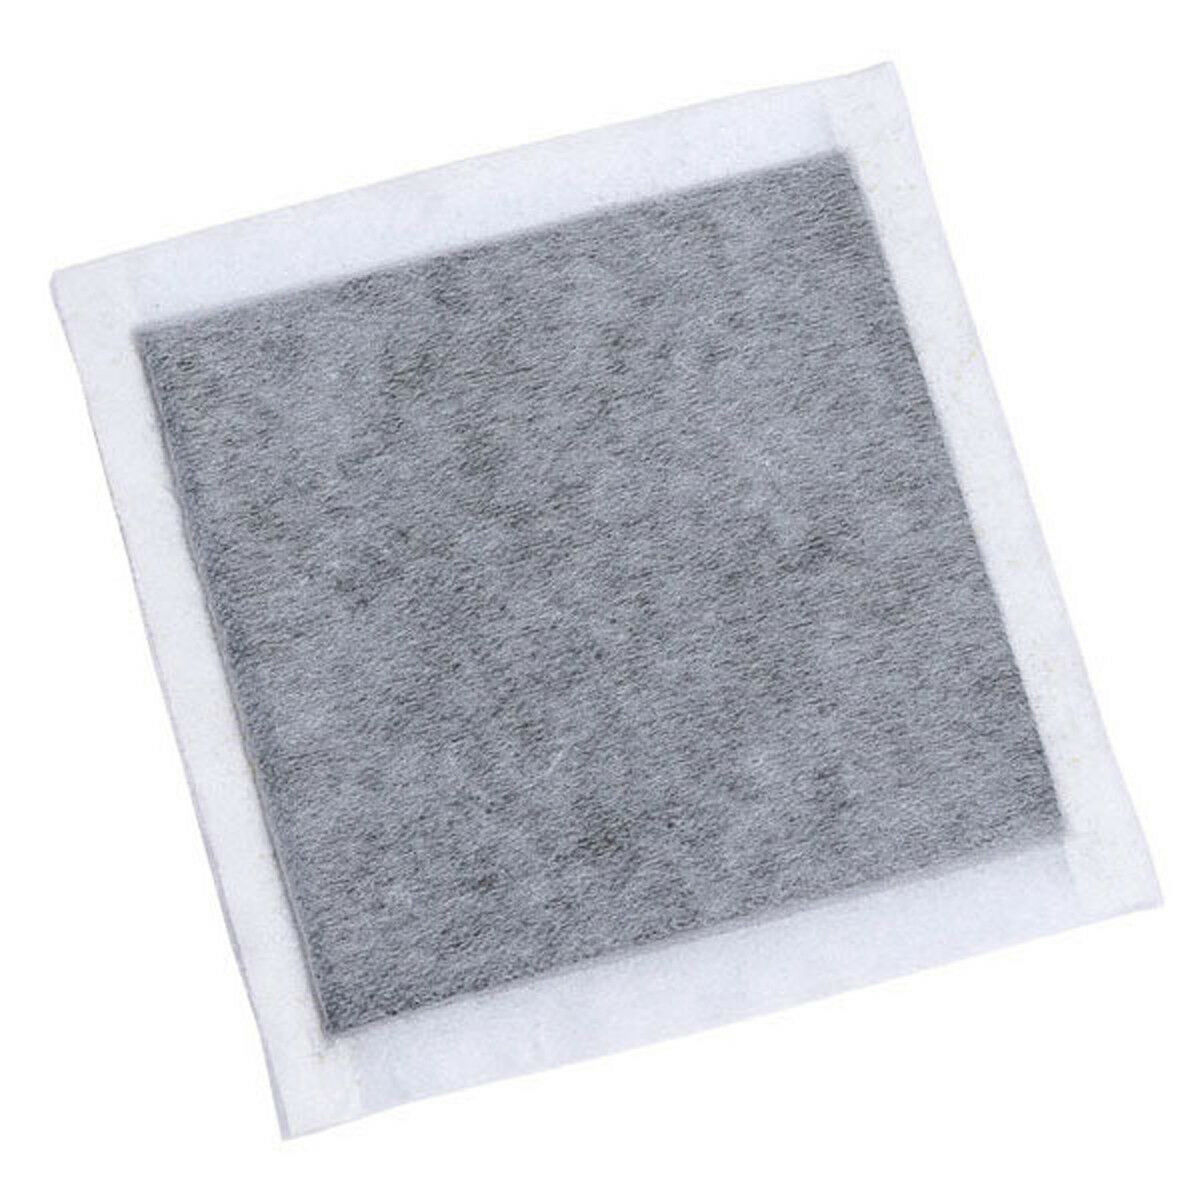 SMELLRID Activated Carbon Flatulence Odor Control Pads: Stop Gas Smell Now!